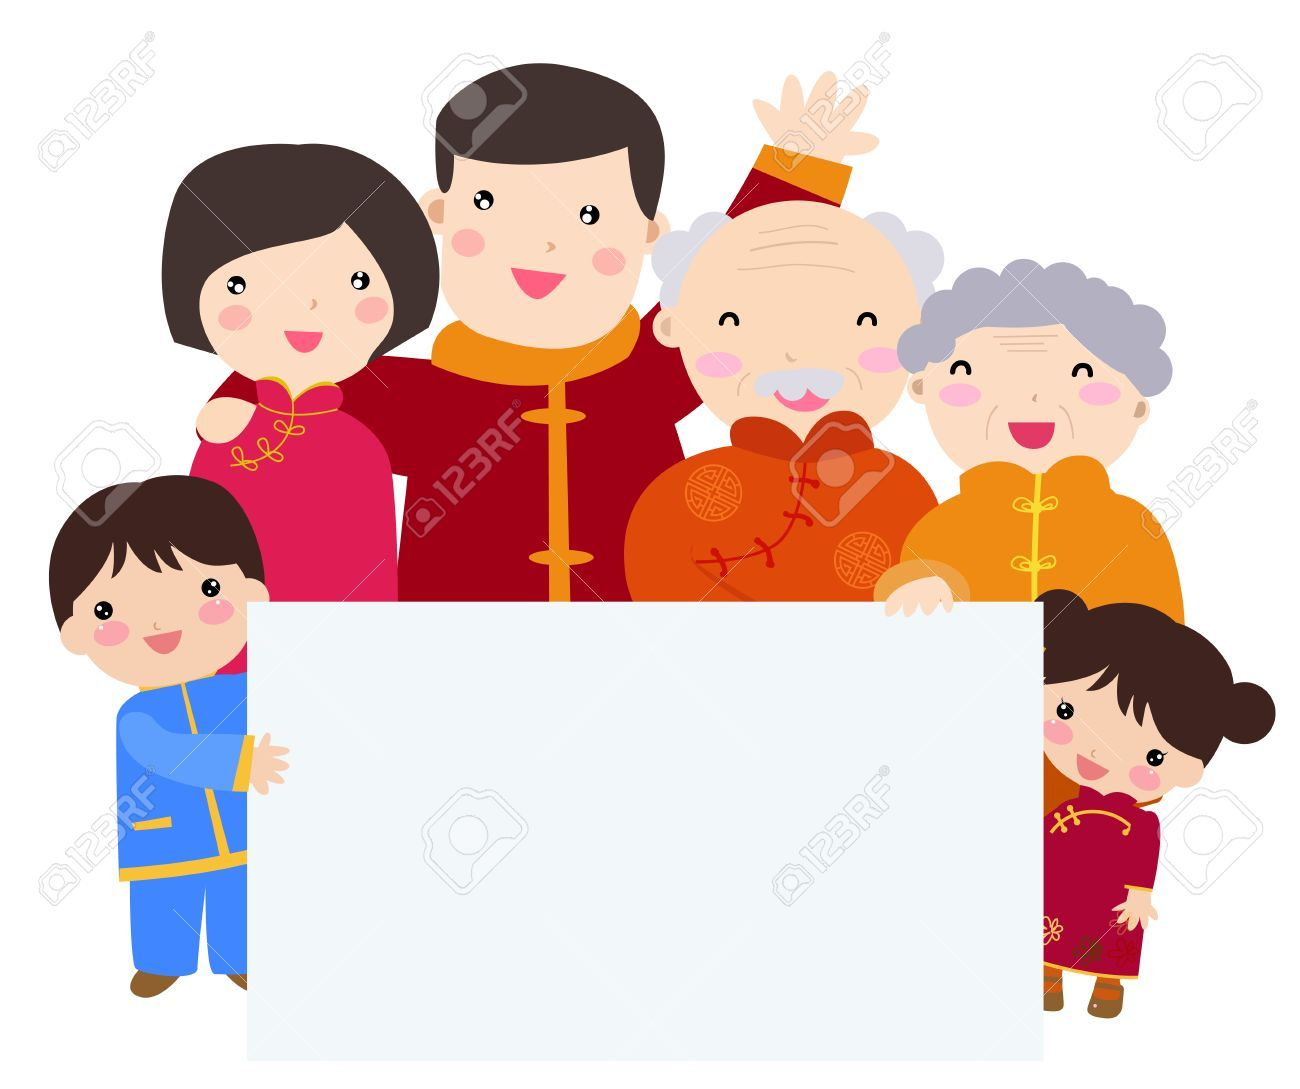 Chinese family clipart 4 » Clipart Portal.